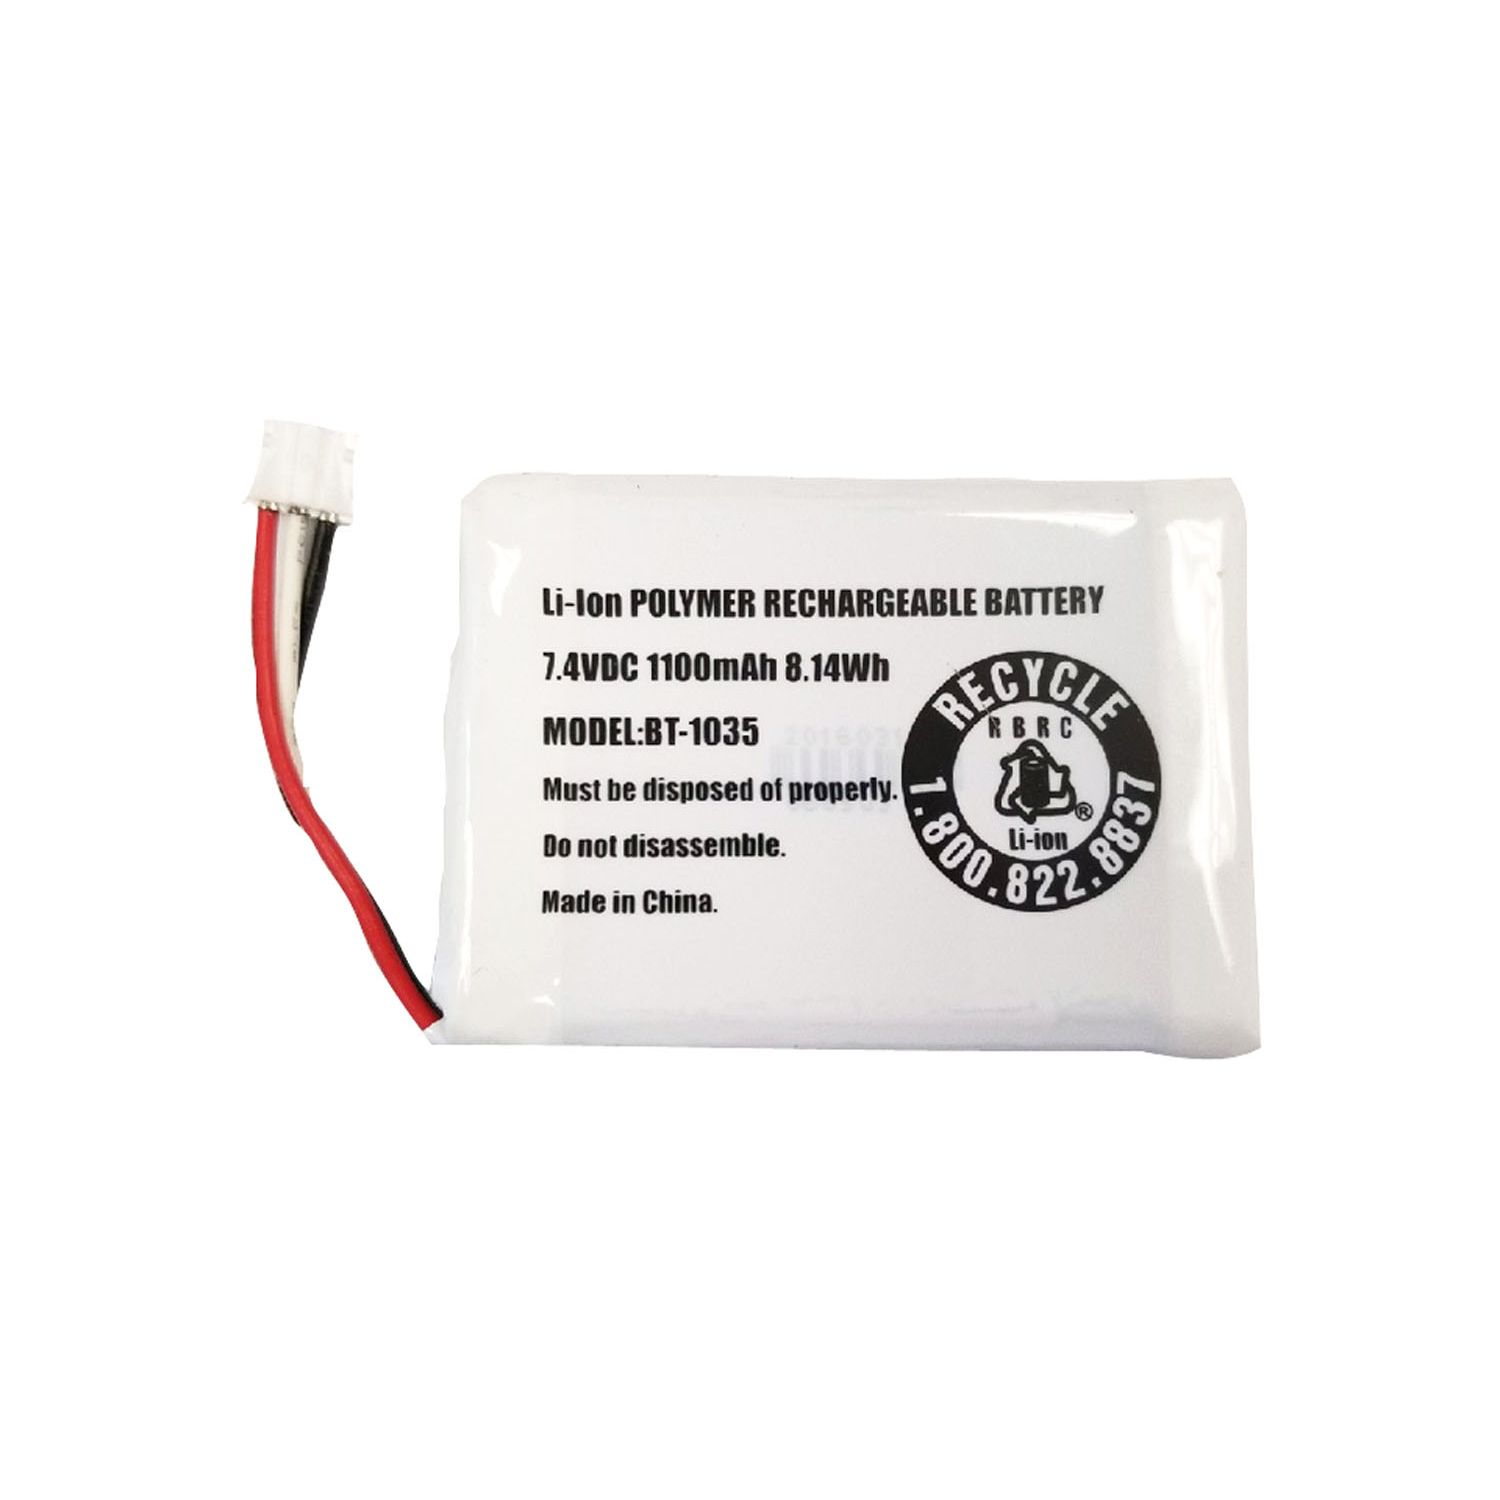 BBTG0920001 - Uniden Replacement Battery for Atlantis270